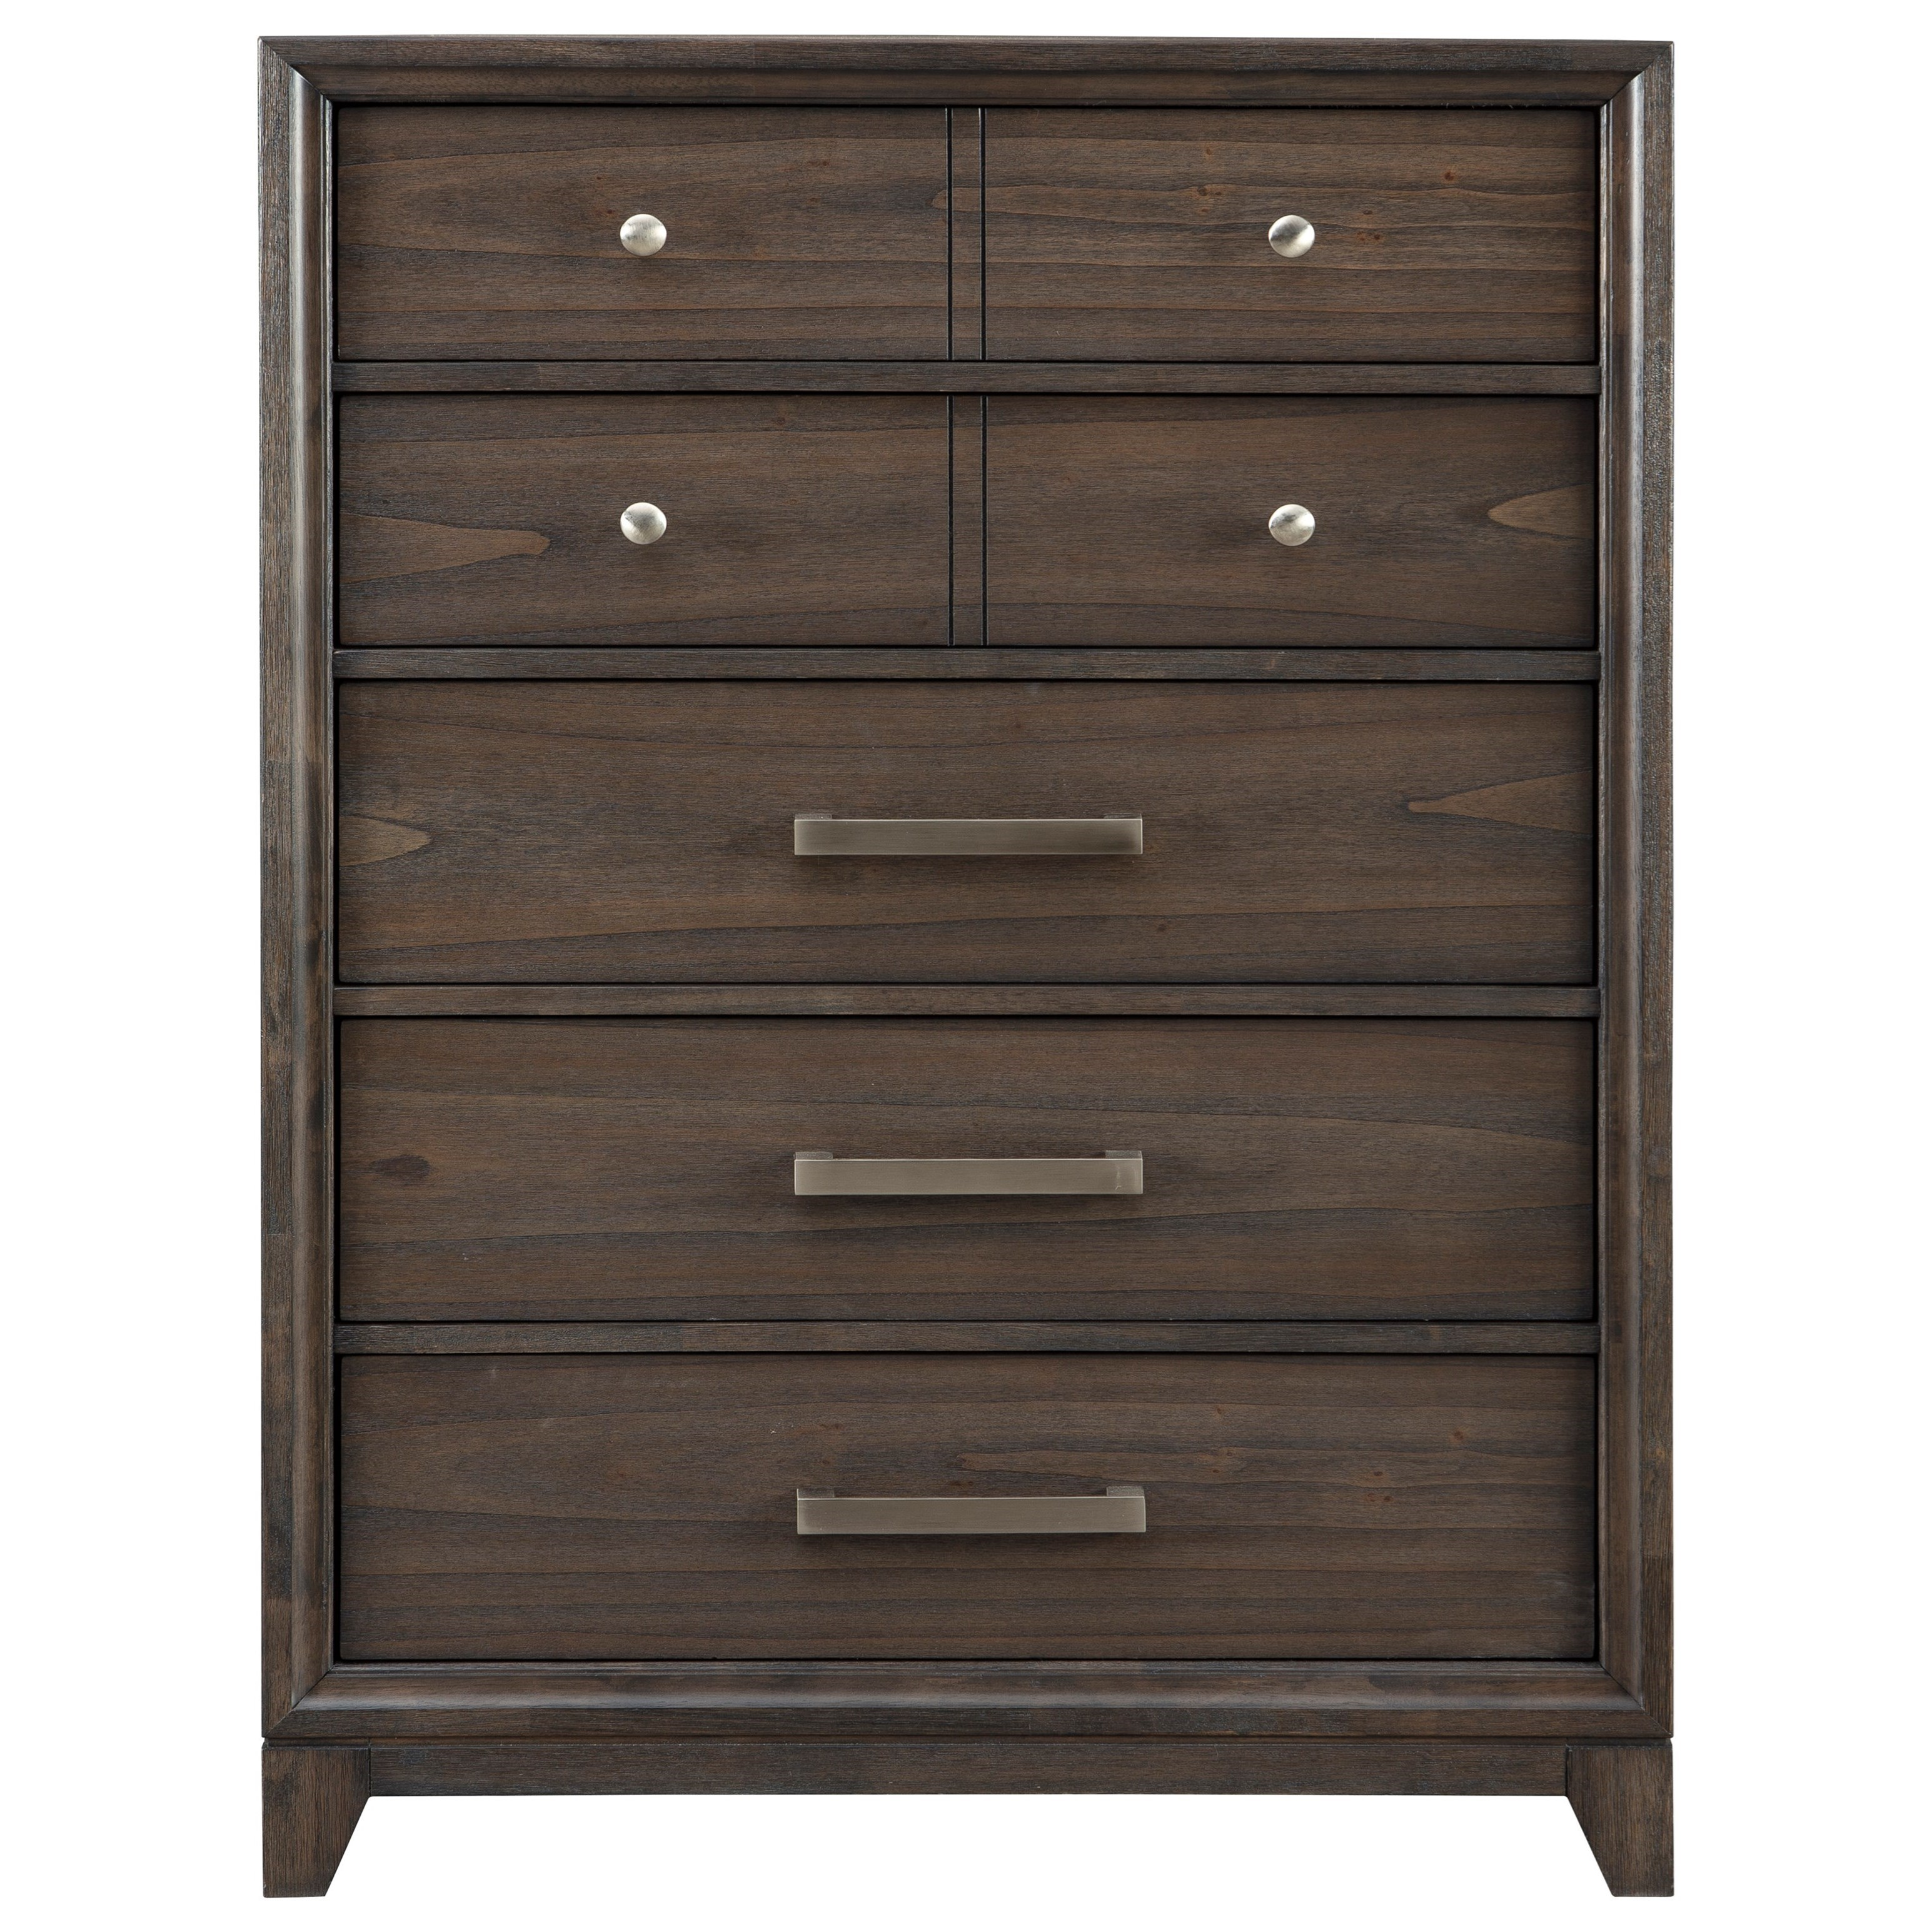 Brueban 5 Drawer Chest by Signature Design by Ashley at HomeWorld Furniture